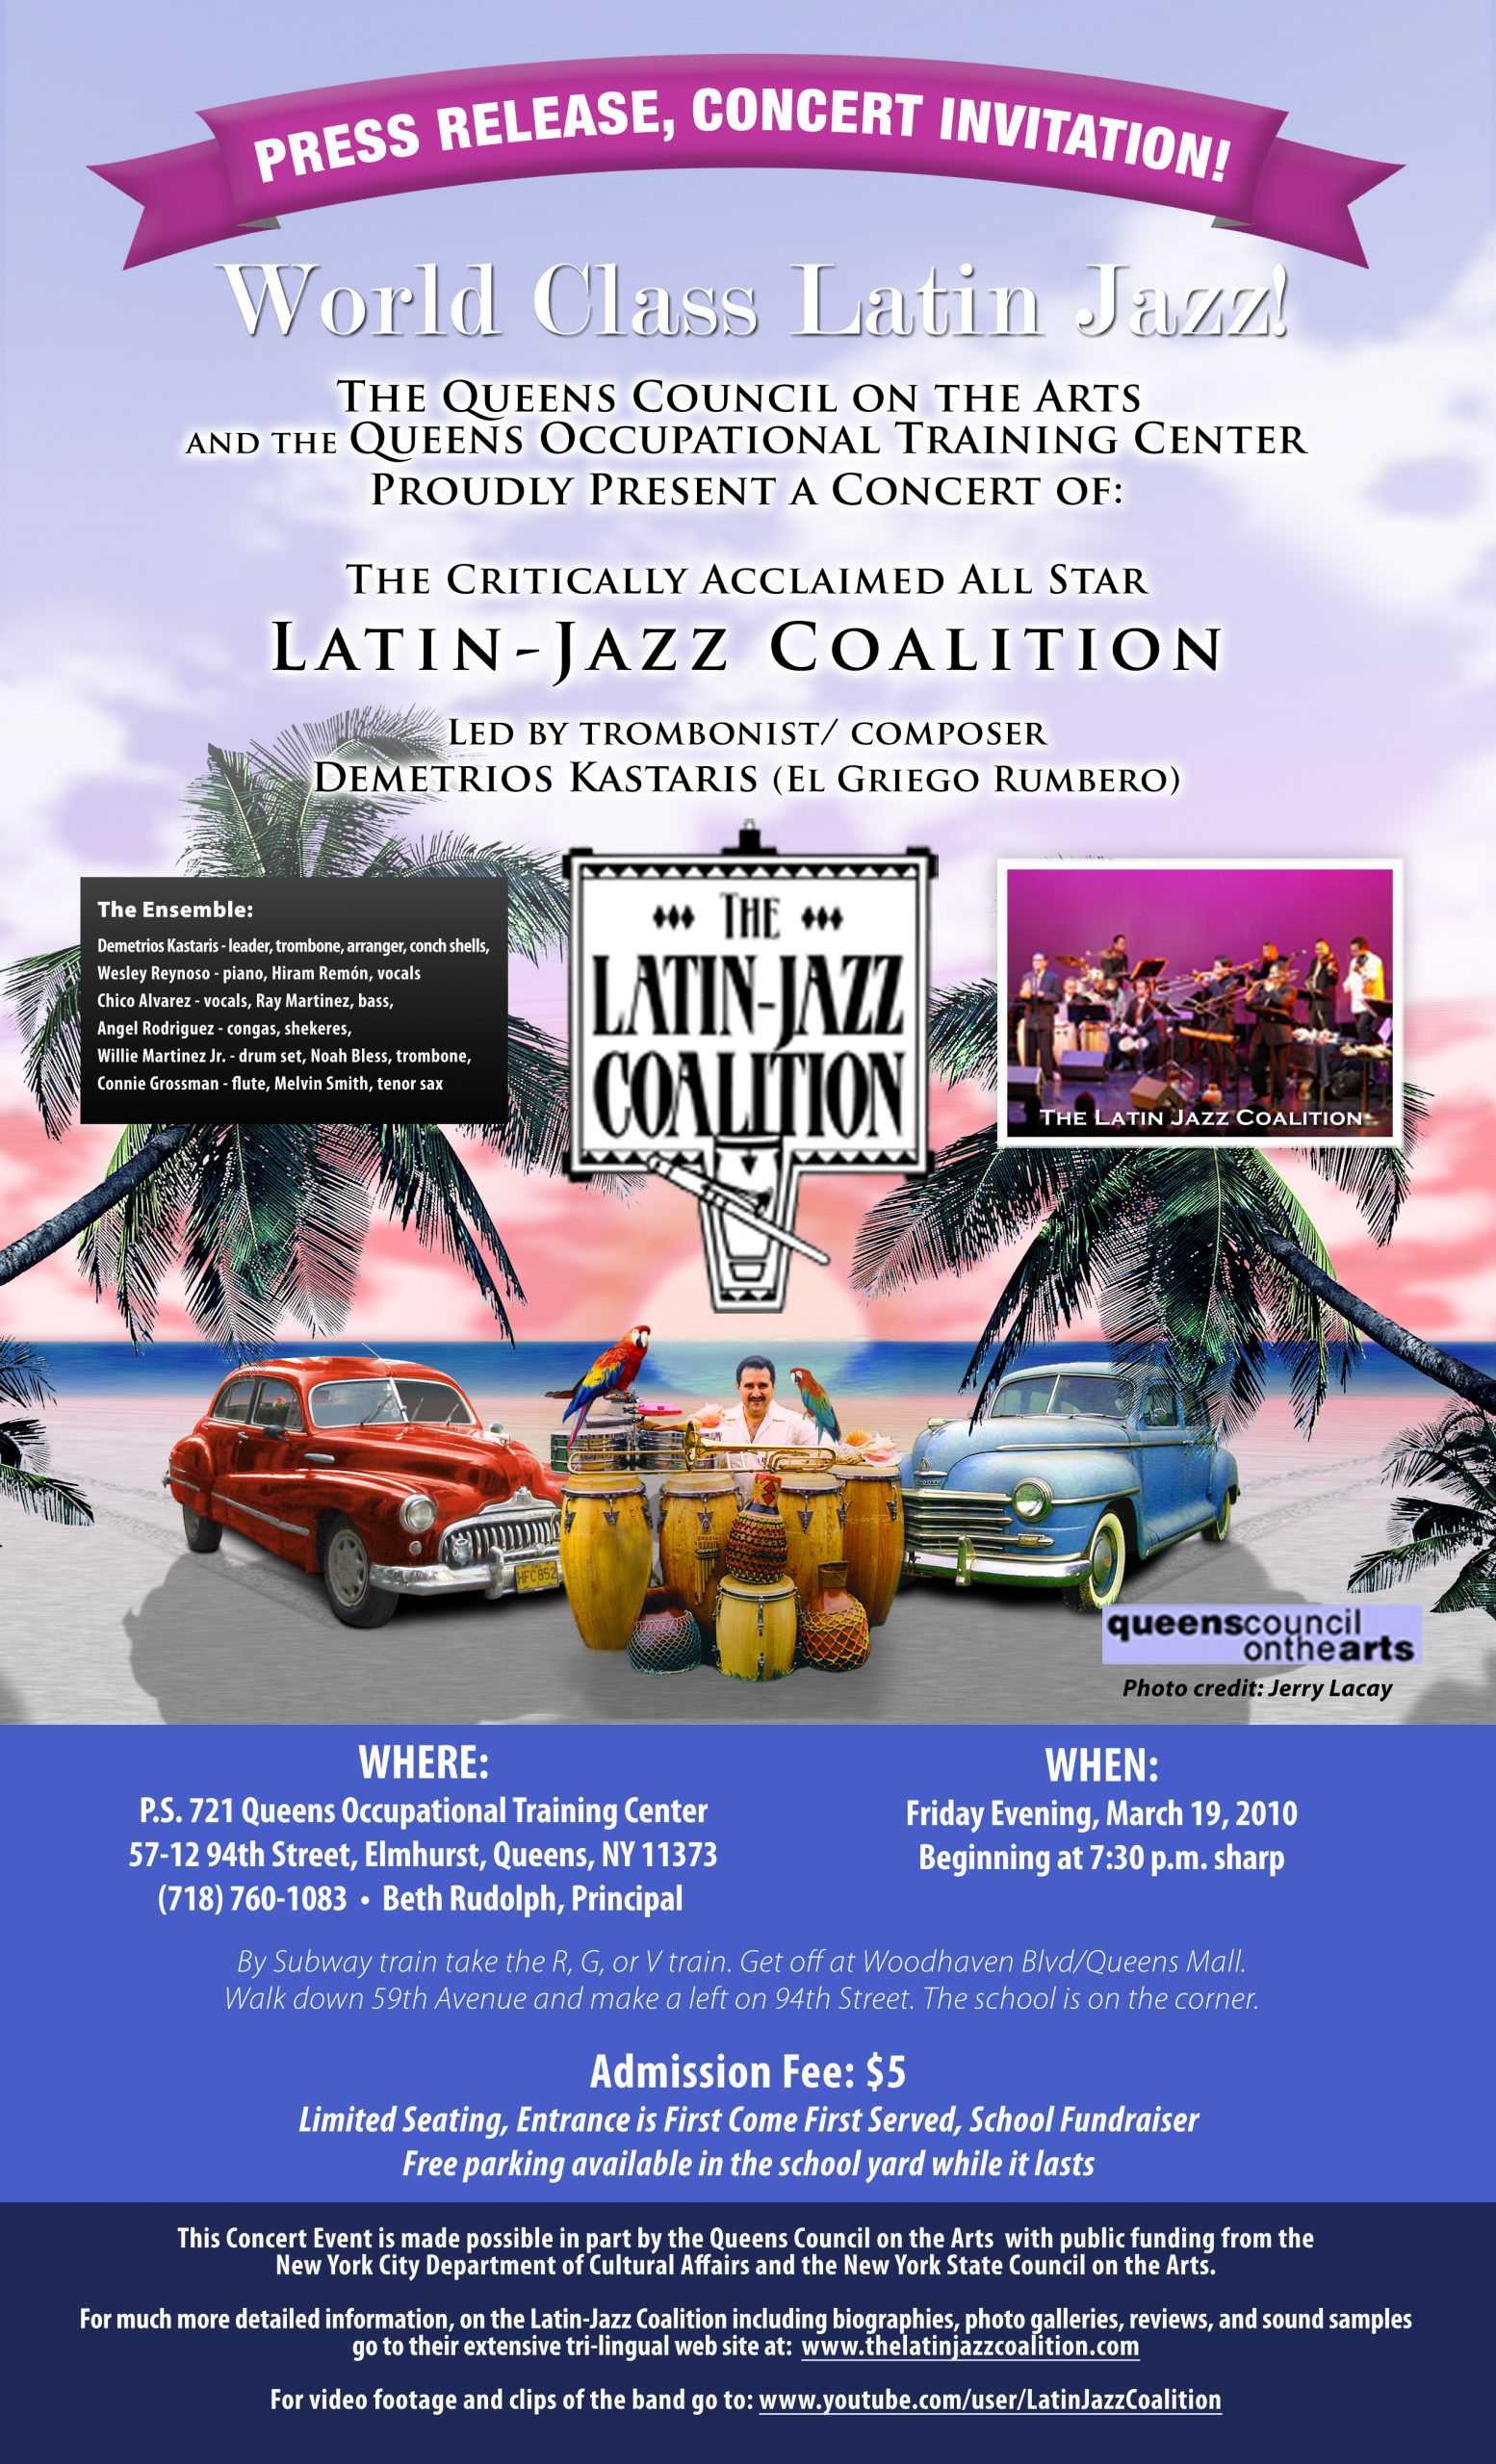 The Queens Council on the Arts and the Queens Occupational Training Center Proudly Present The Latin-Jazz Coalition Friday, December 19, 2010